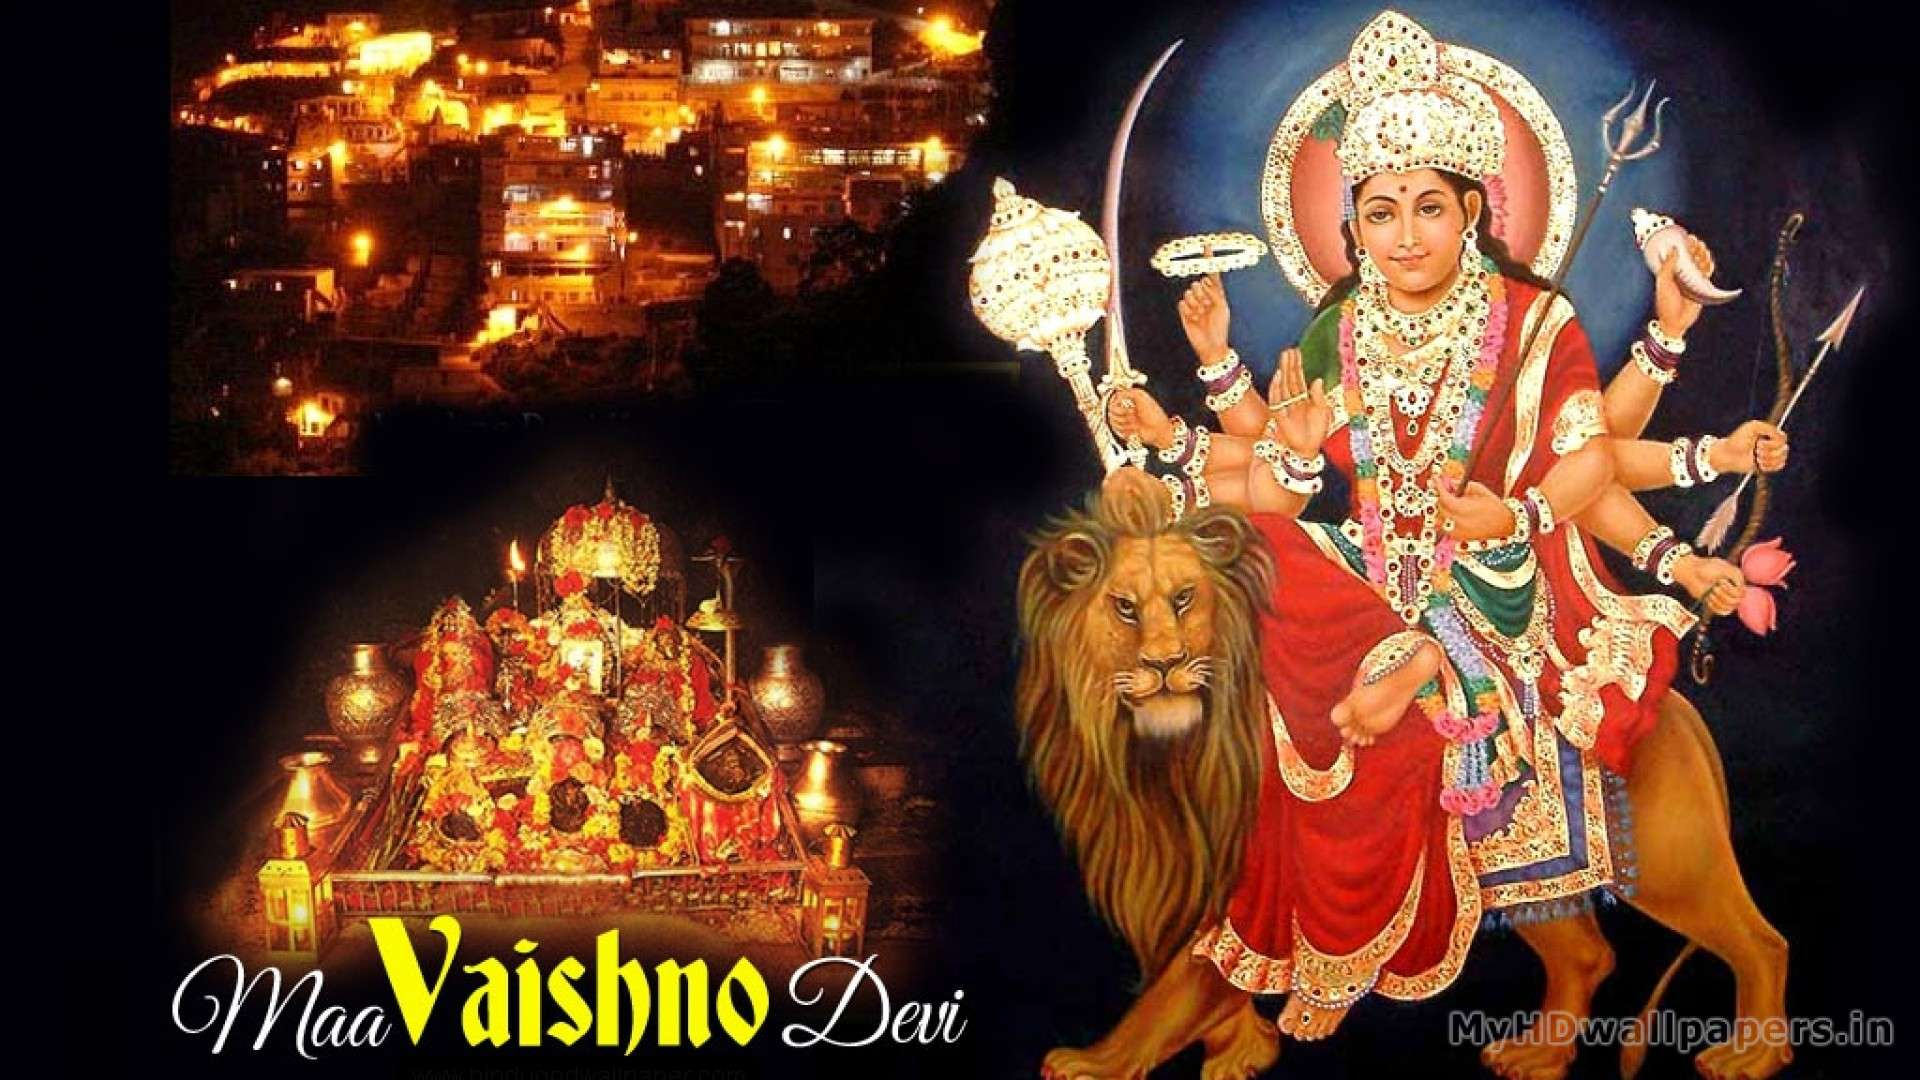 Maa Vaishno Devi Wallpapers For Desktop : Hd Wallpapers